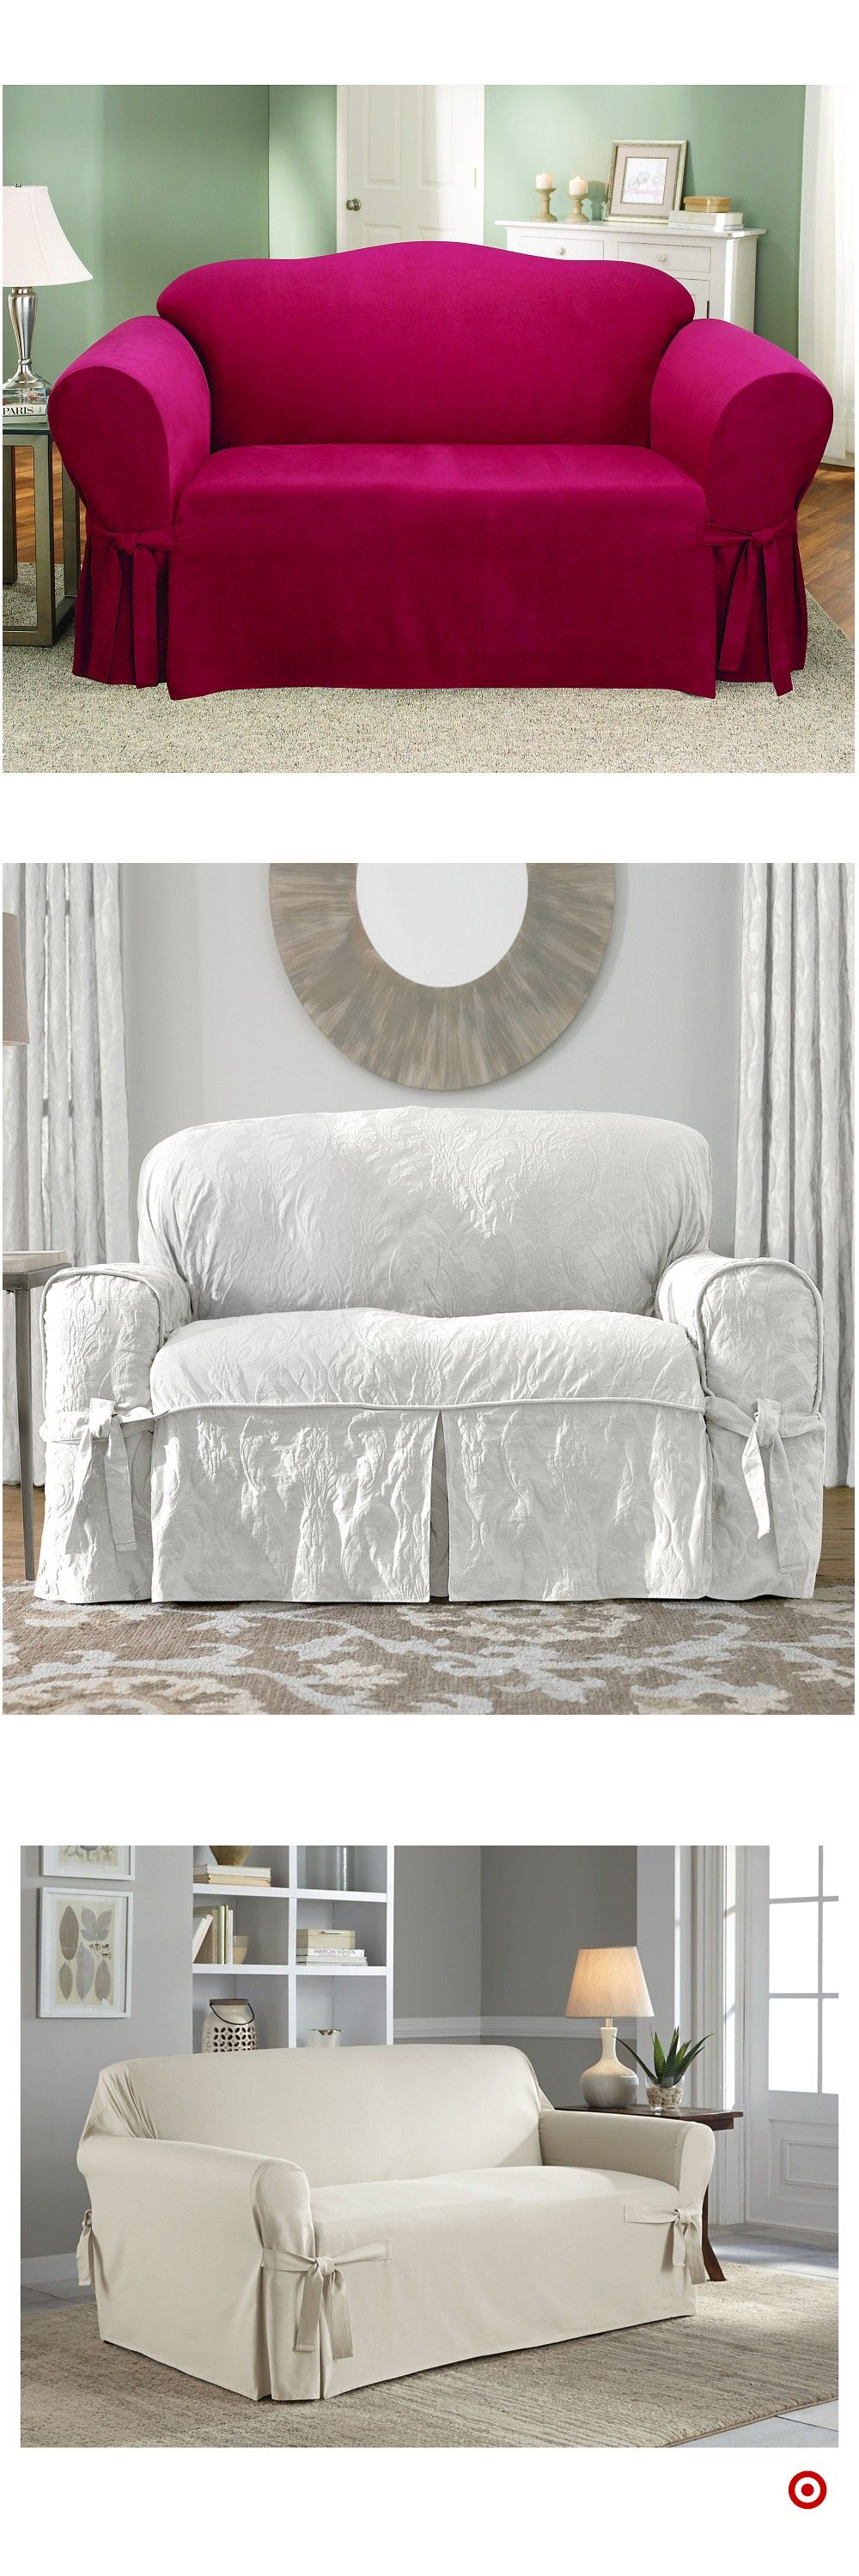 Shop Target For Loveseat Slipcover You Will Love At Great Low Prices Free Shipping On Orders Of 35 Or Free Same Day Loveseat Slipcovers Love Seat Slipcovers